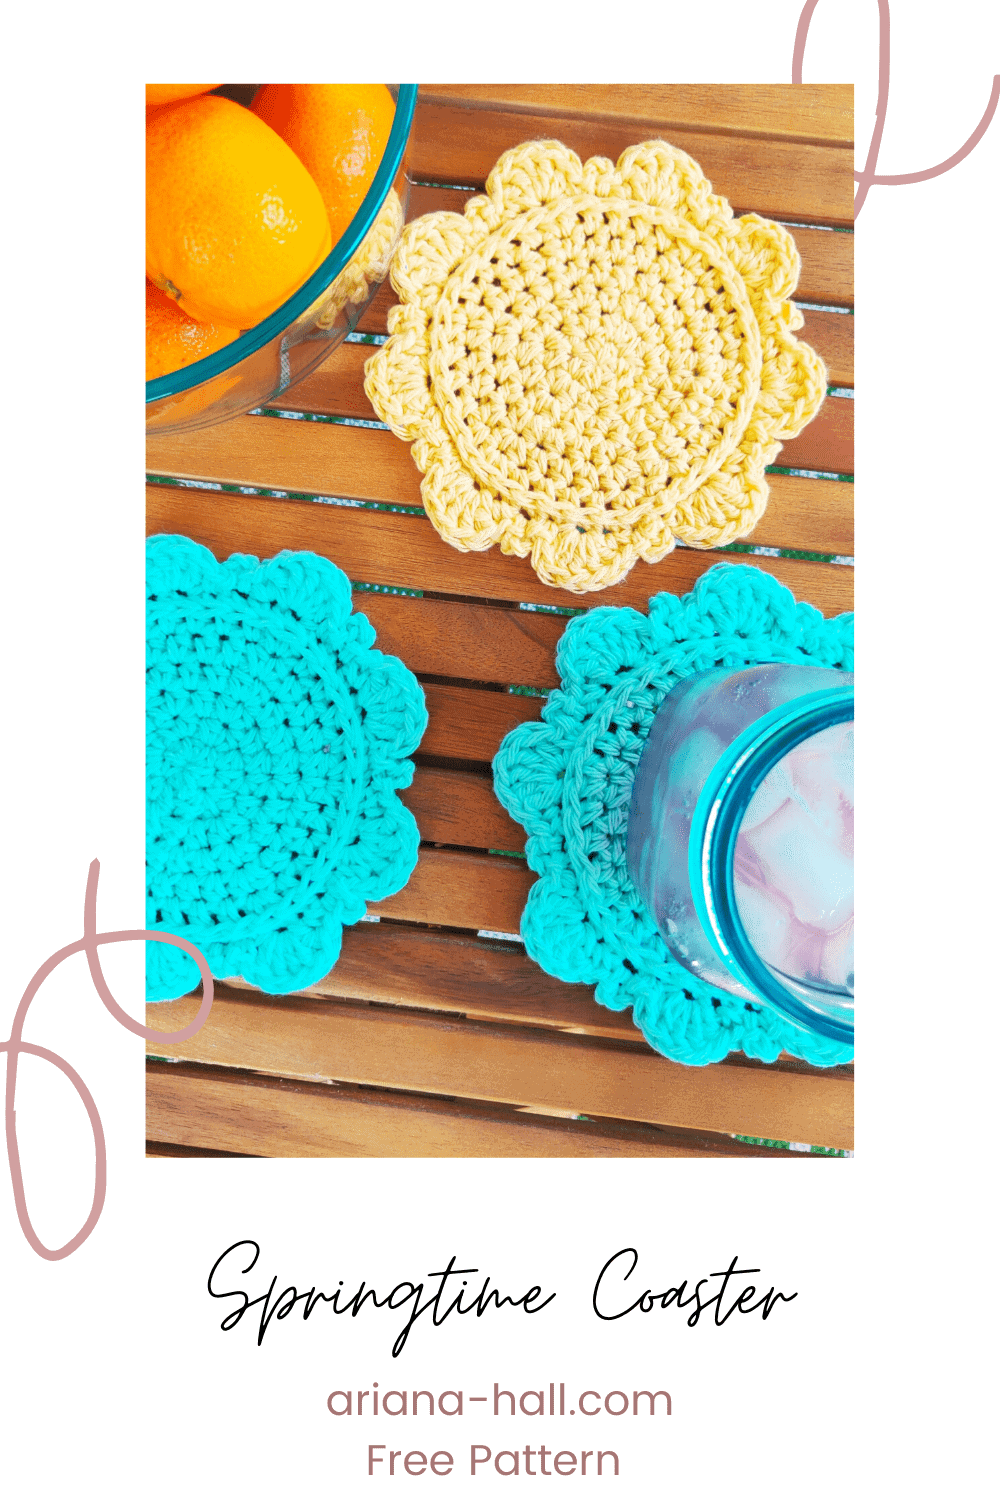 Springtime crochet coaster in yellow and blue laying on a outdoor wooden table.